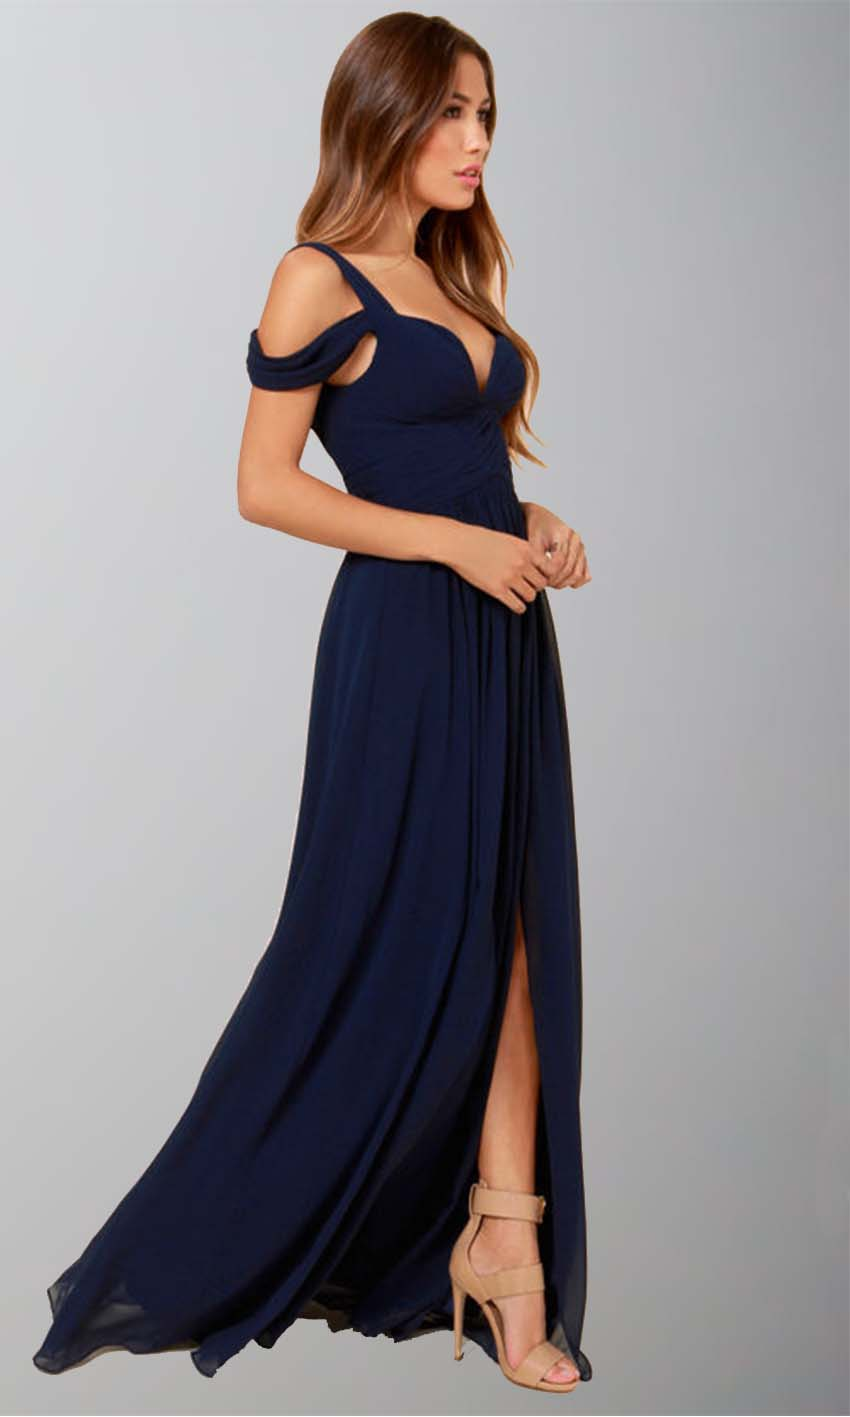 Navy blue off shoulder slit sexy maxi dresses ksp246 ksp246 navy blue off shoulder slit sexy maxi dresses ksp246 ksp246 8700 cheap prom dresses uk bridesmaid dresses 2014 prom evening dresses ombrellifo Image collections